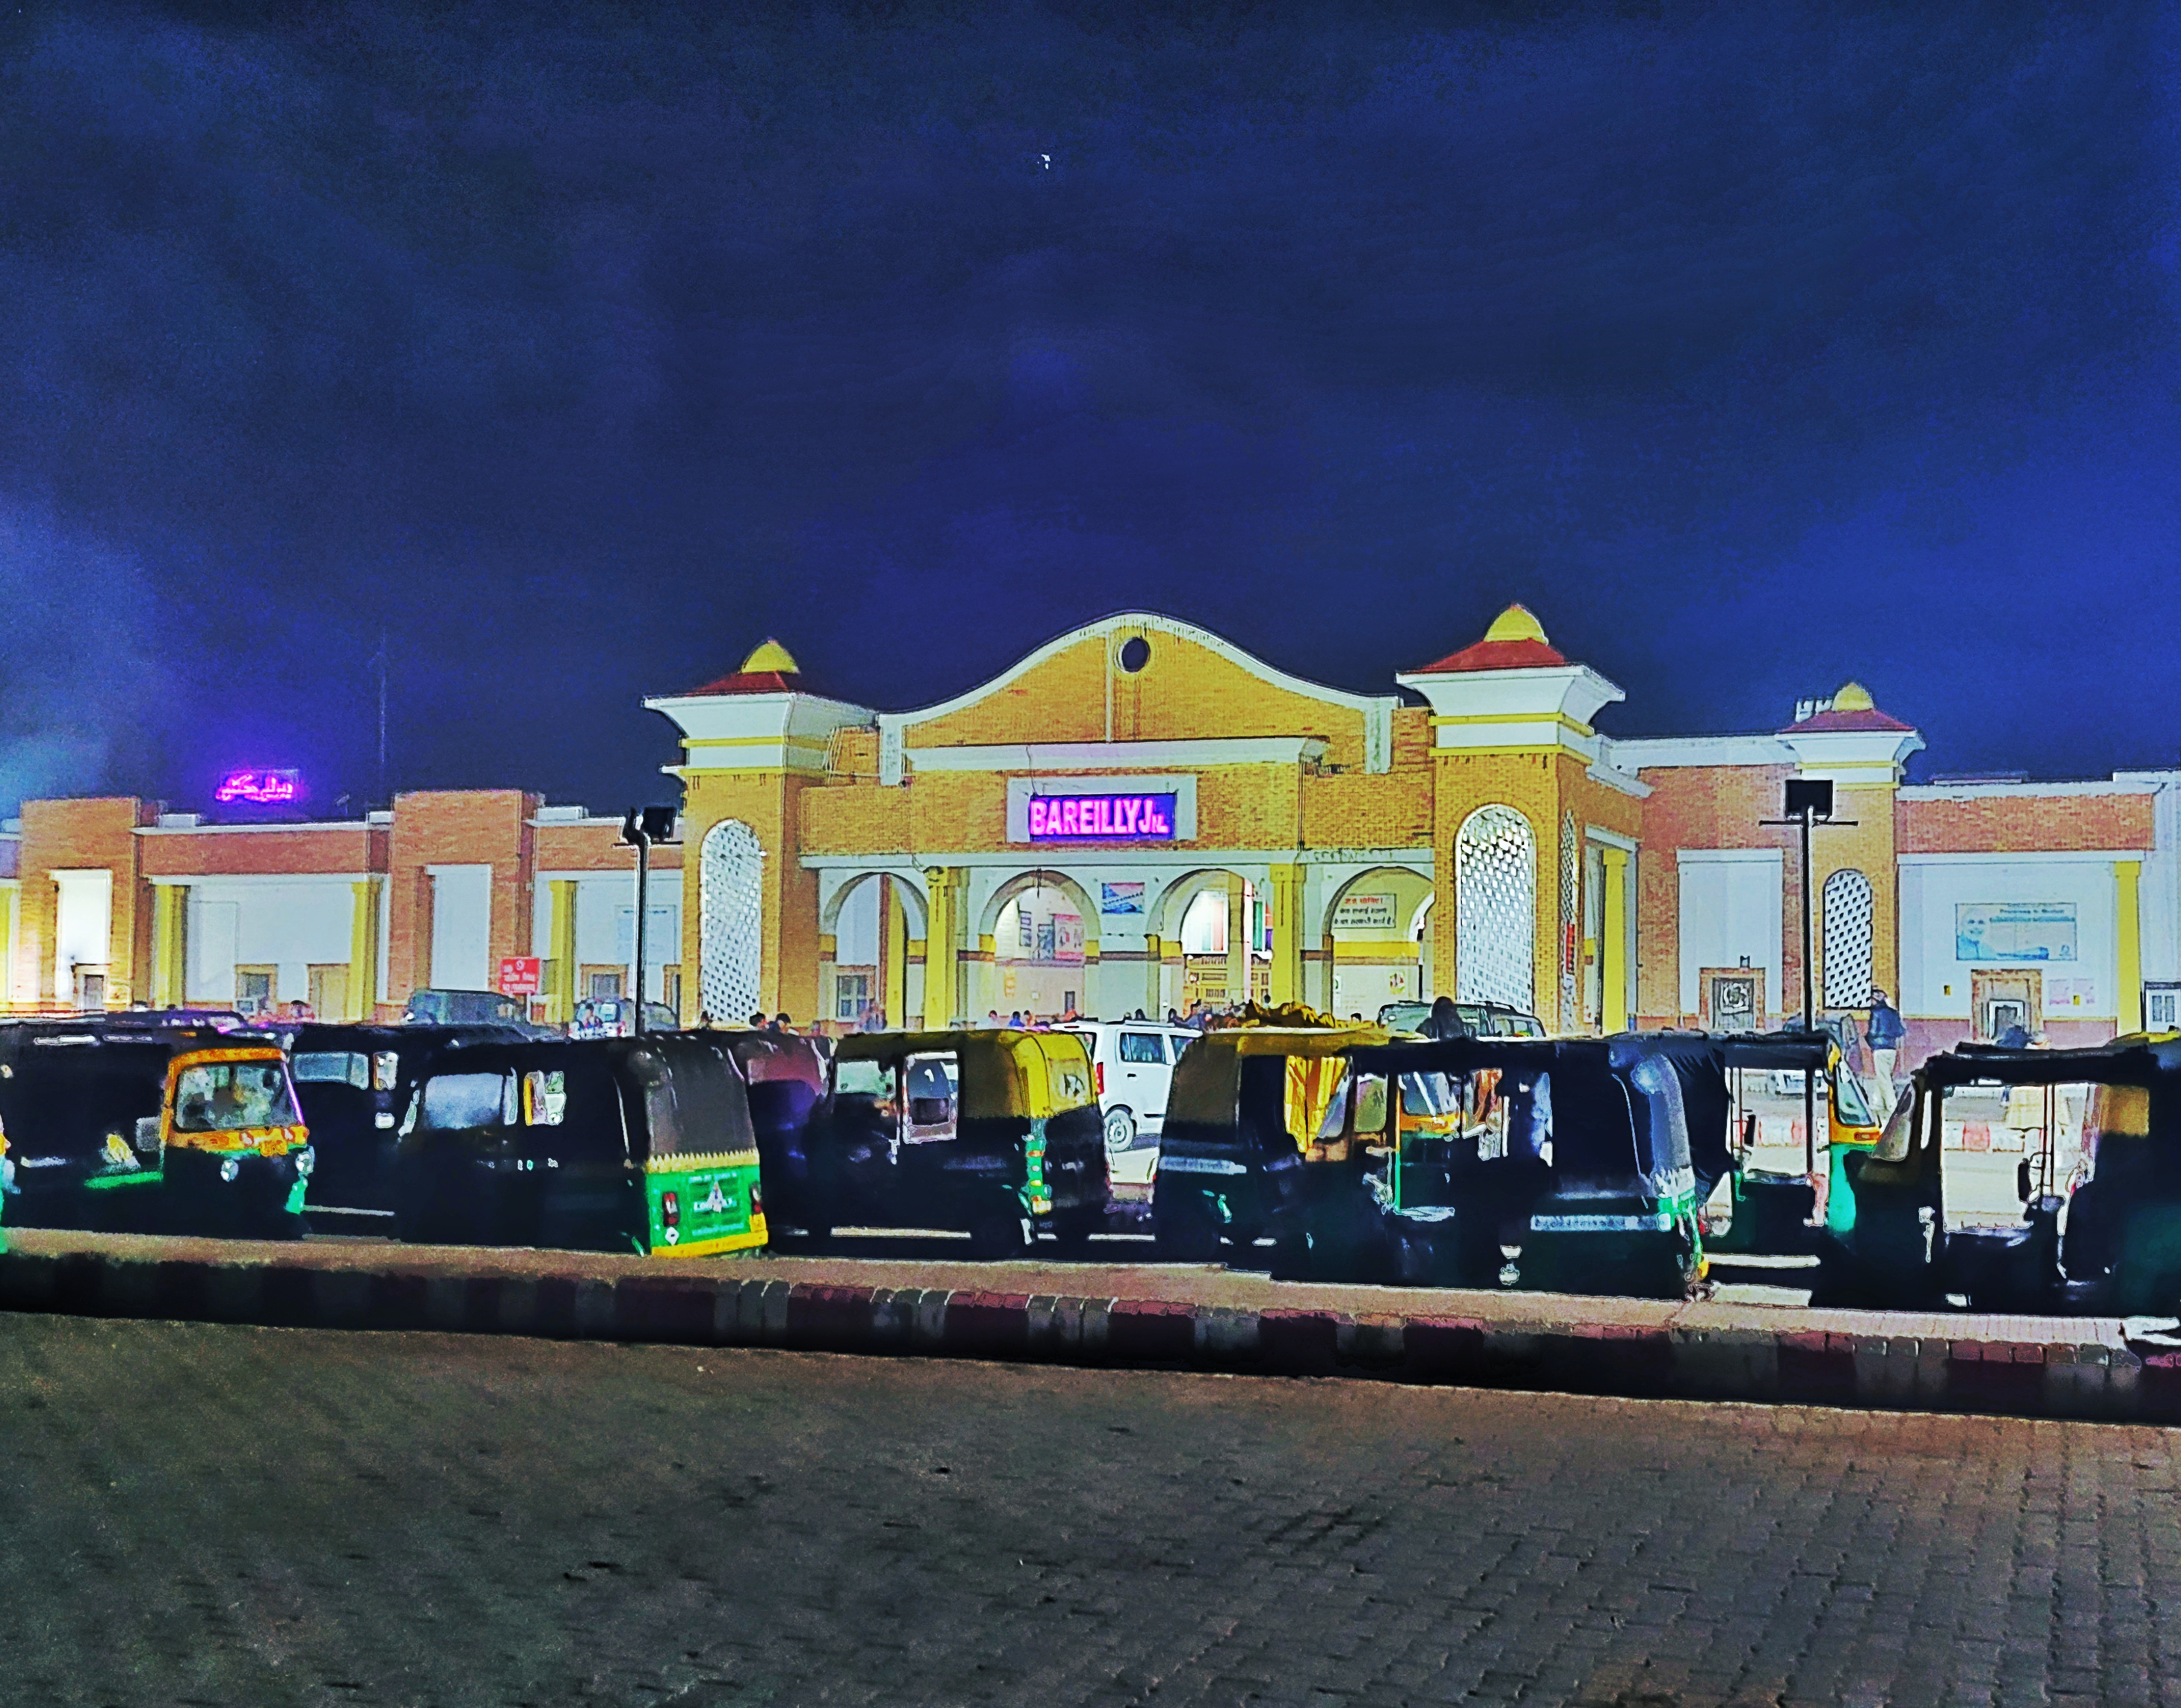 File:Bareilly Junction at night jpg - Wikimedia Commons